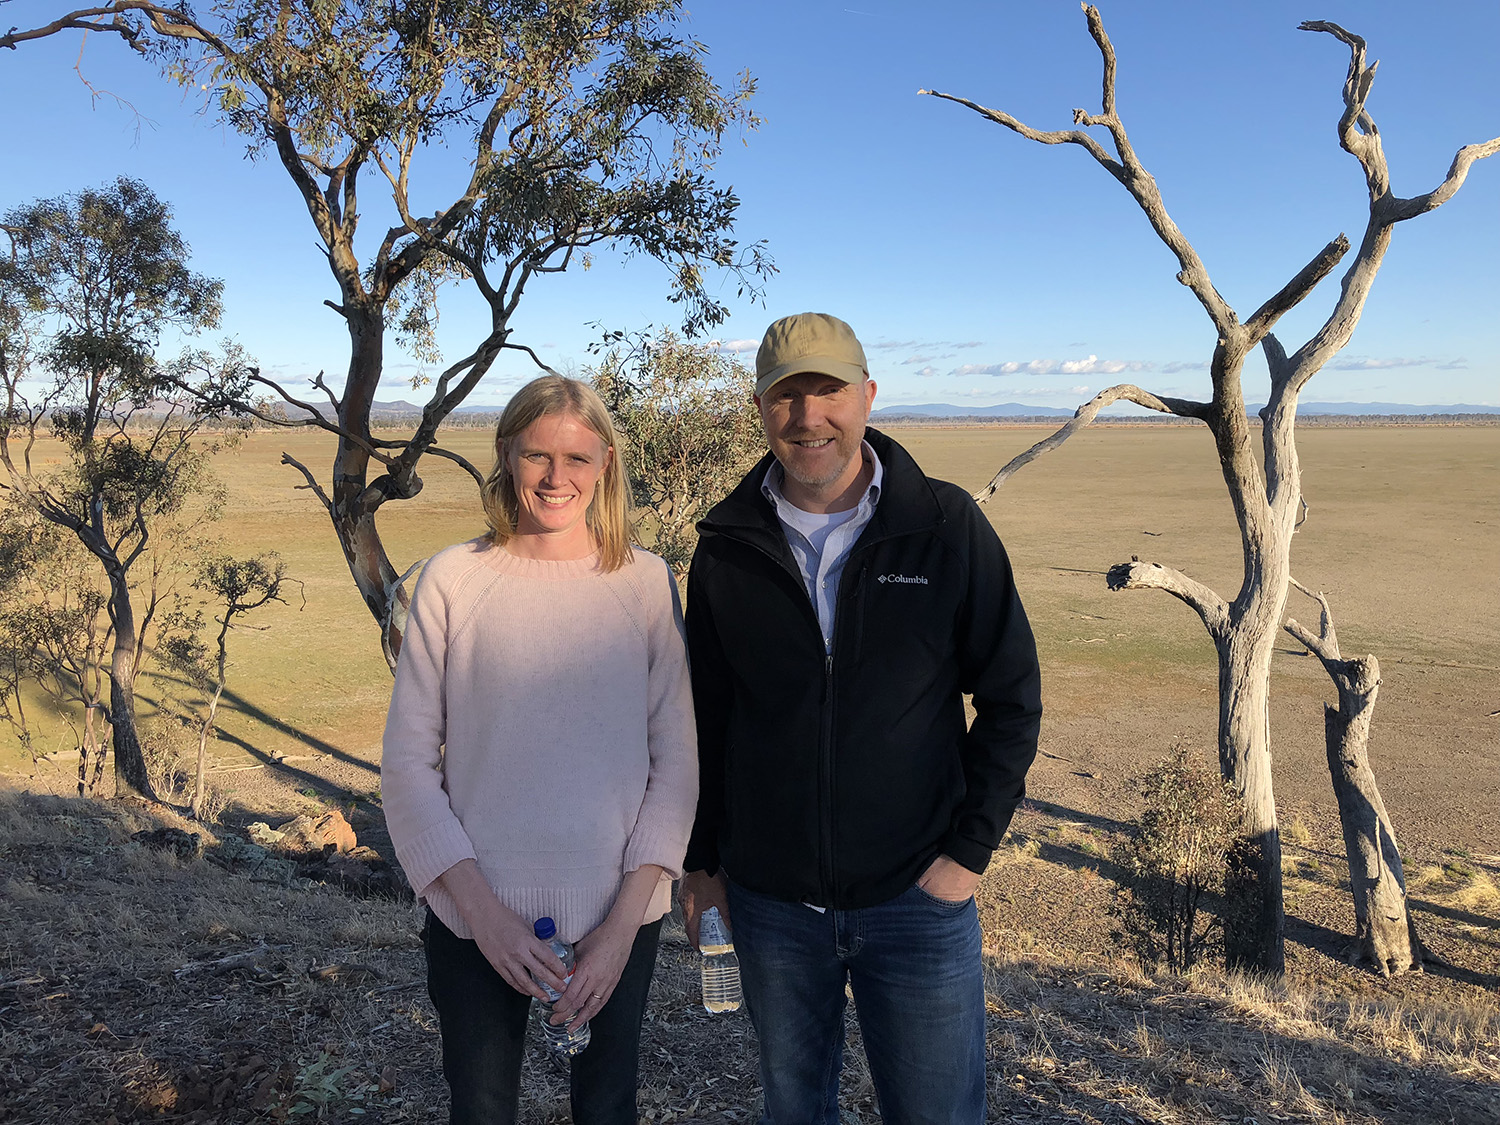 Trent and Jenny at the 2nd Twinning Workshop at the Winton Wetlands (4 June 2018). Photo credit: Tamara Boyd